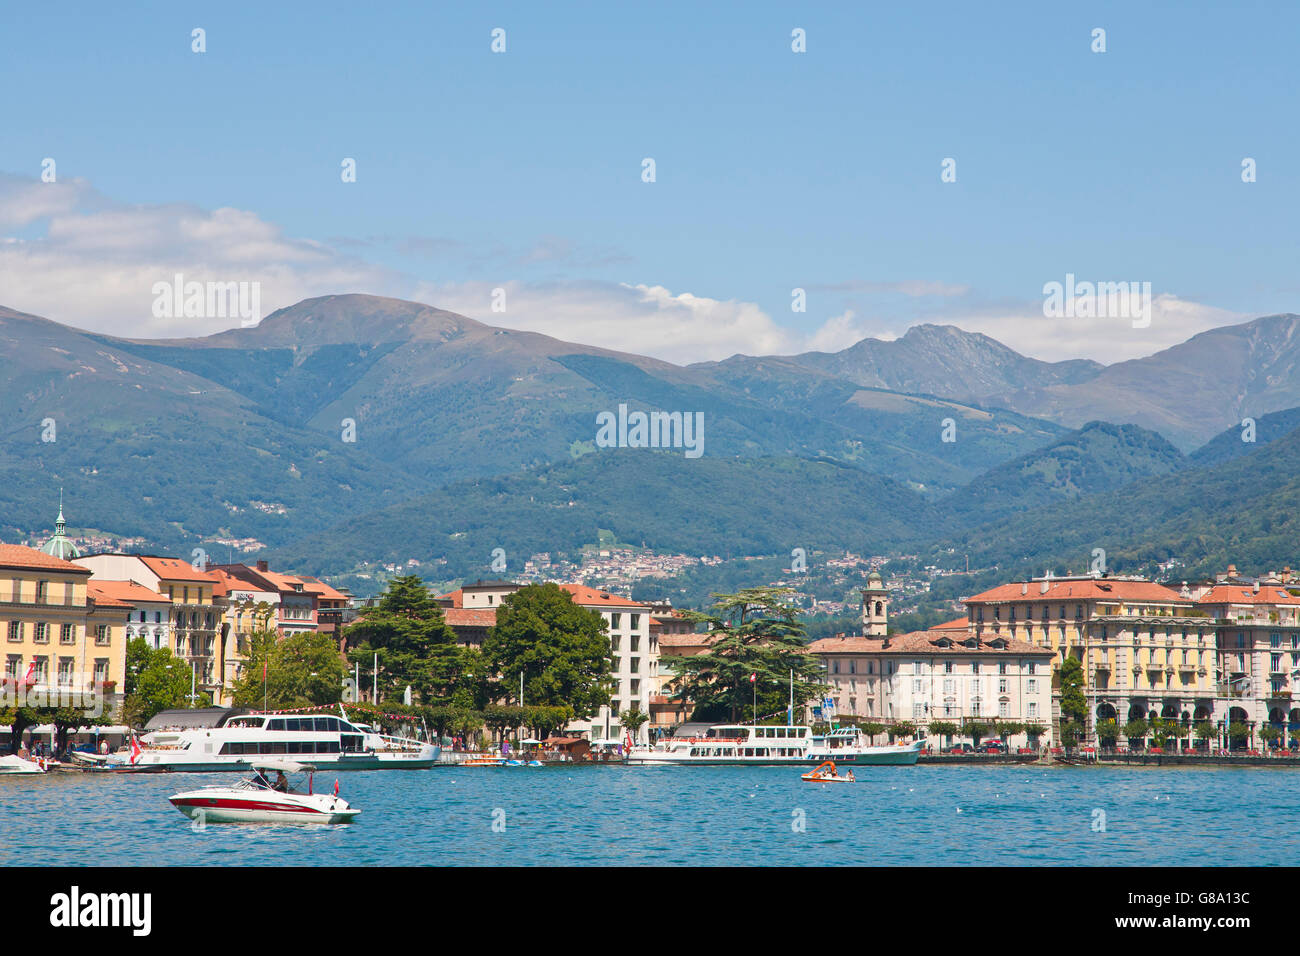 View over Lake Lugano towards Lugano, Lago di Lugano, Ticino, Switzerland, Europe Stock Photo